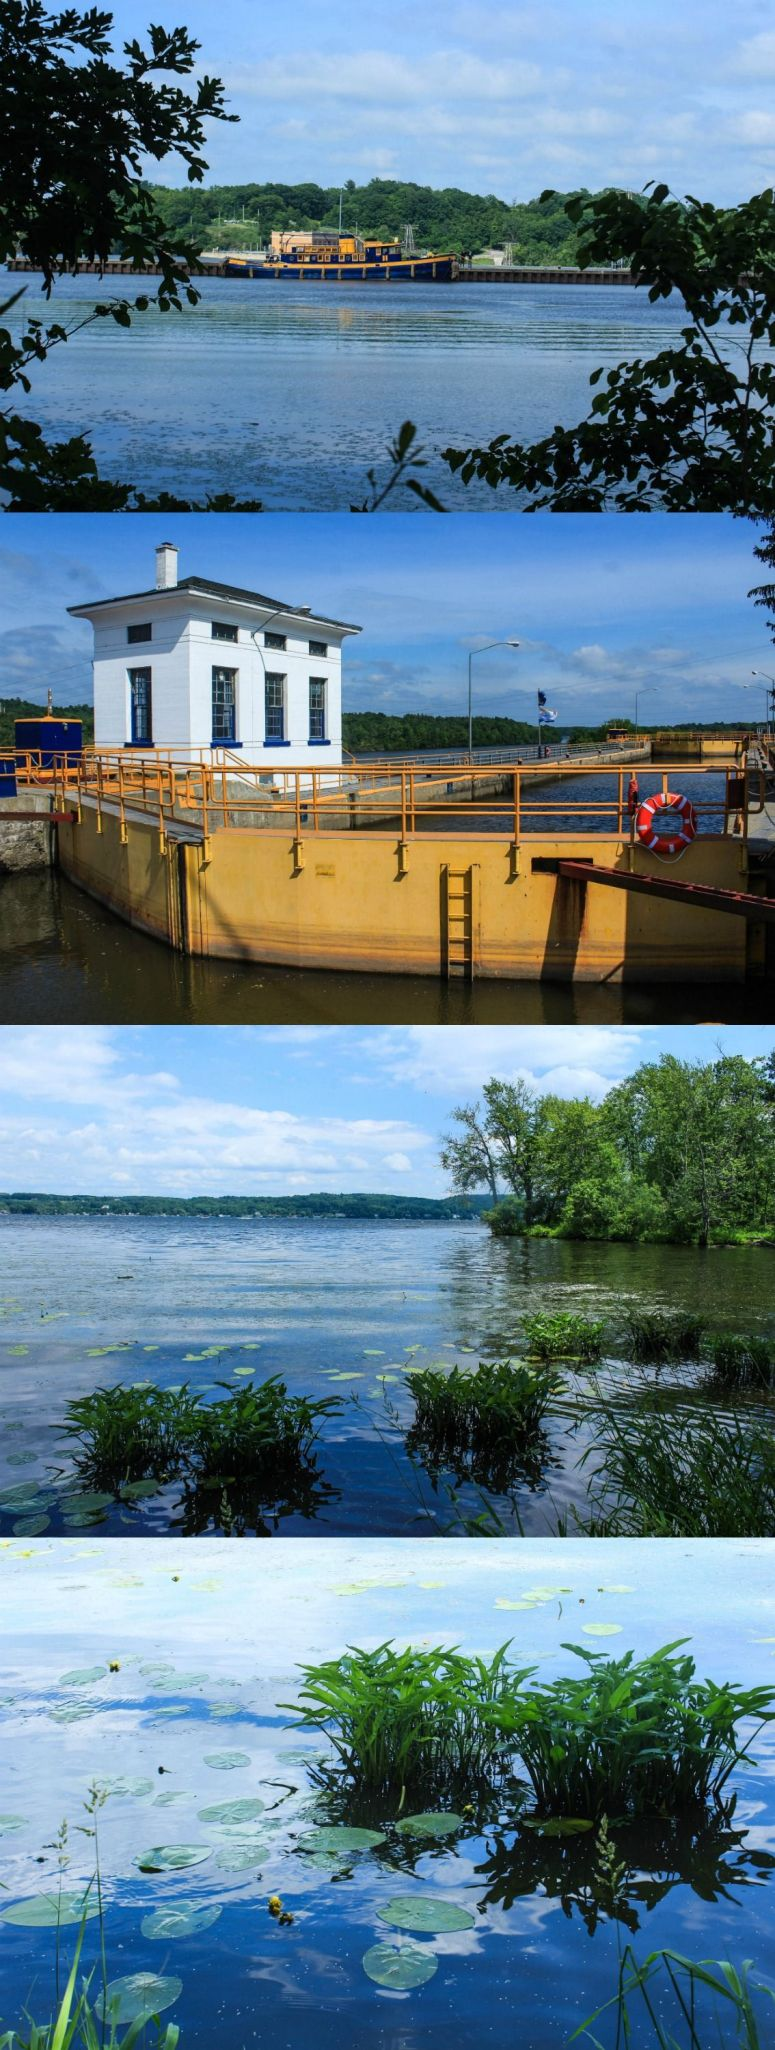 Exploring the Capitol Region of New York: Erie Canal, Saratoga Lake, and Hiking Buck Mountain.